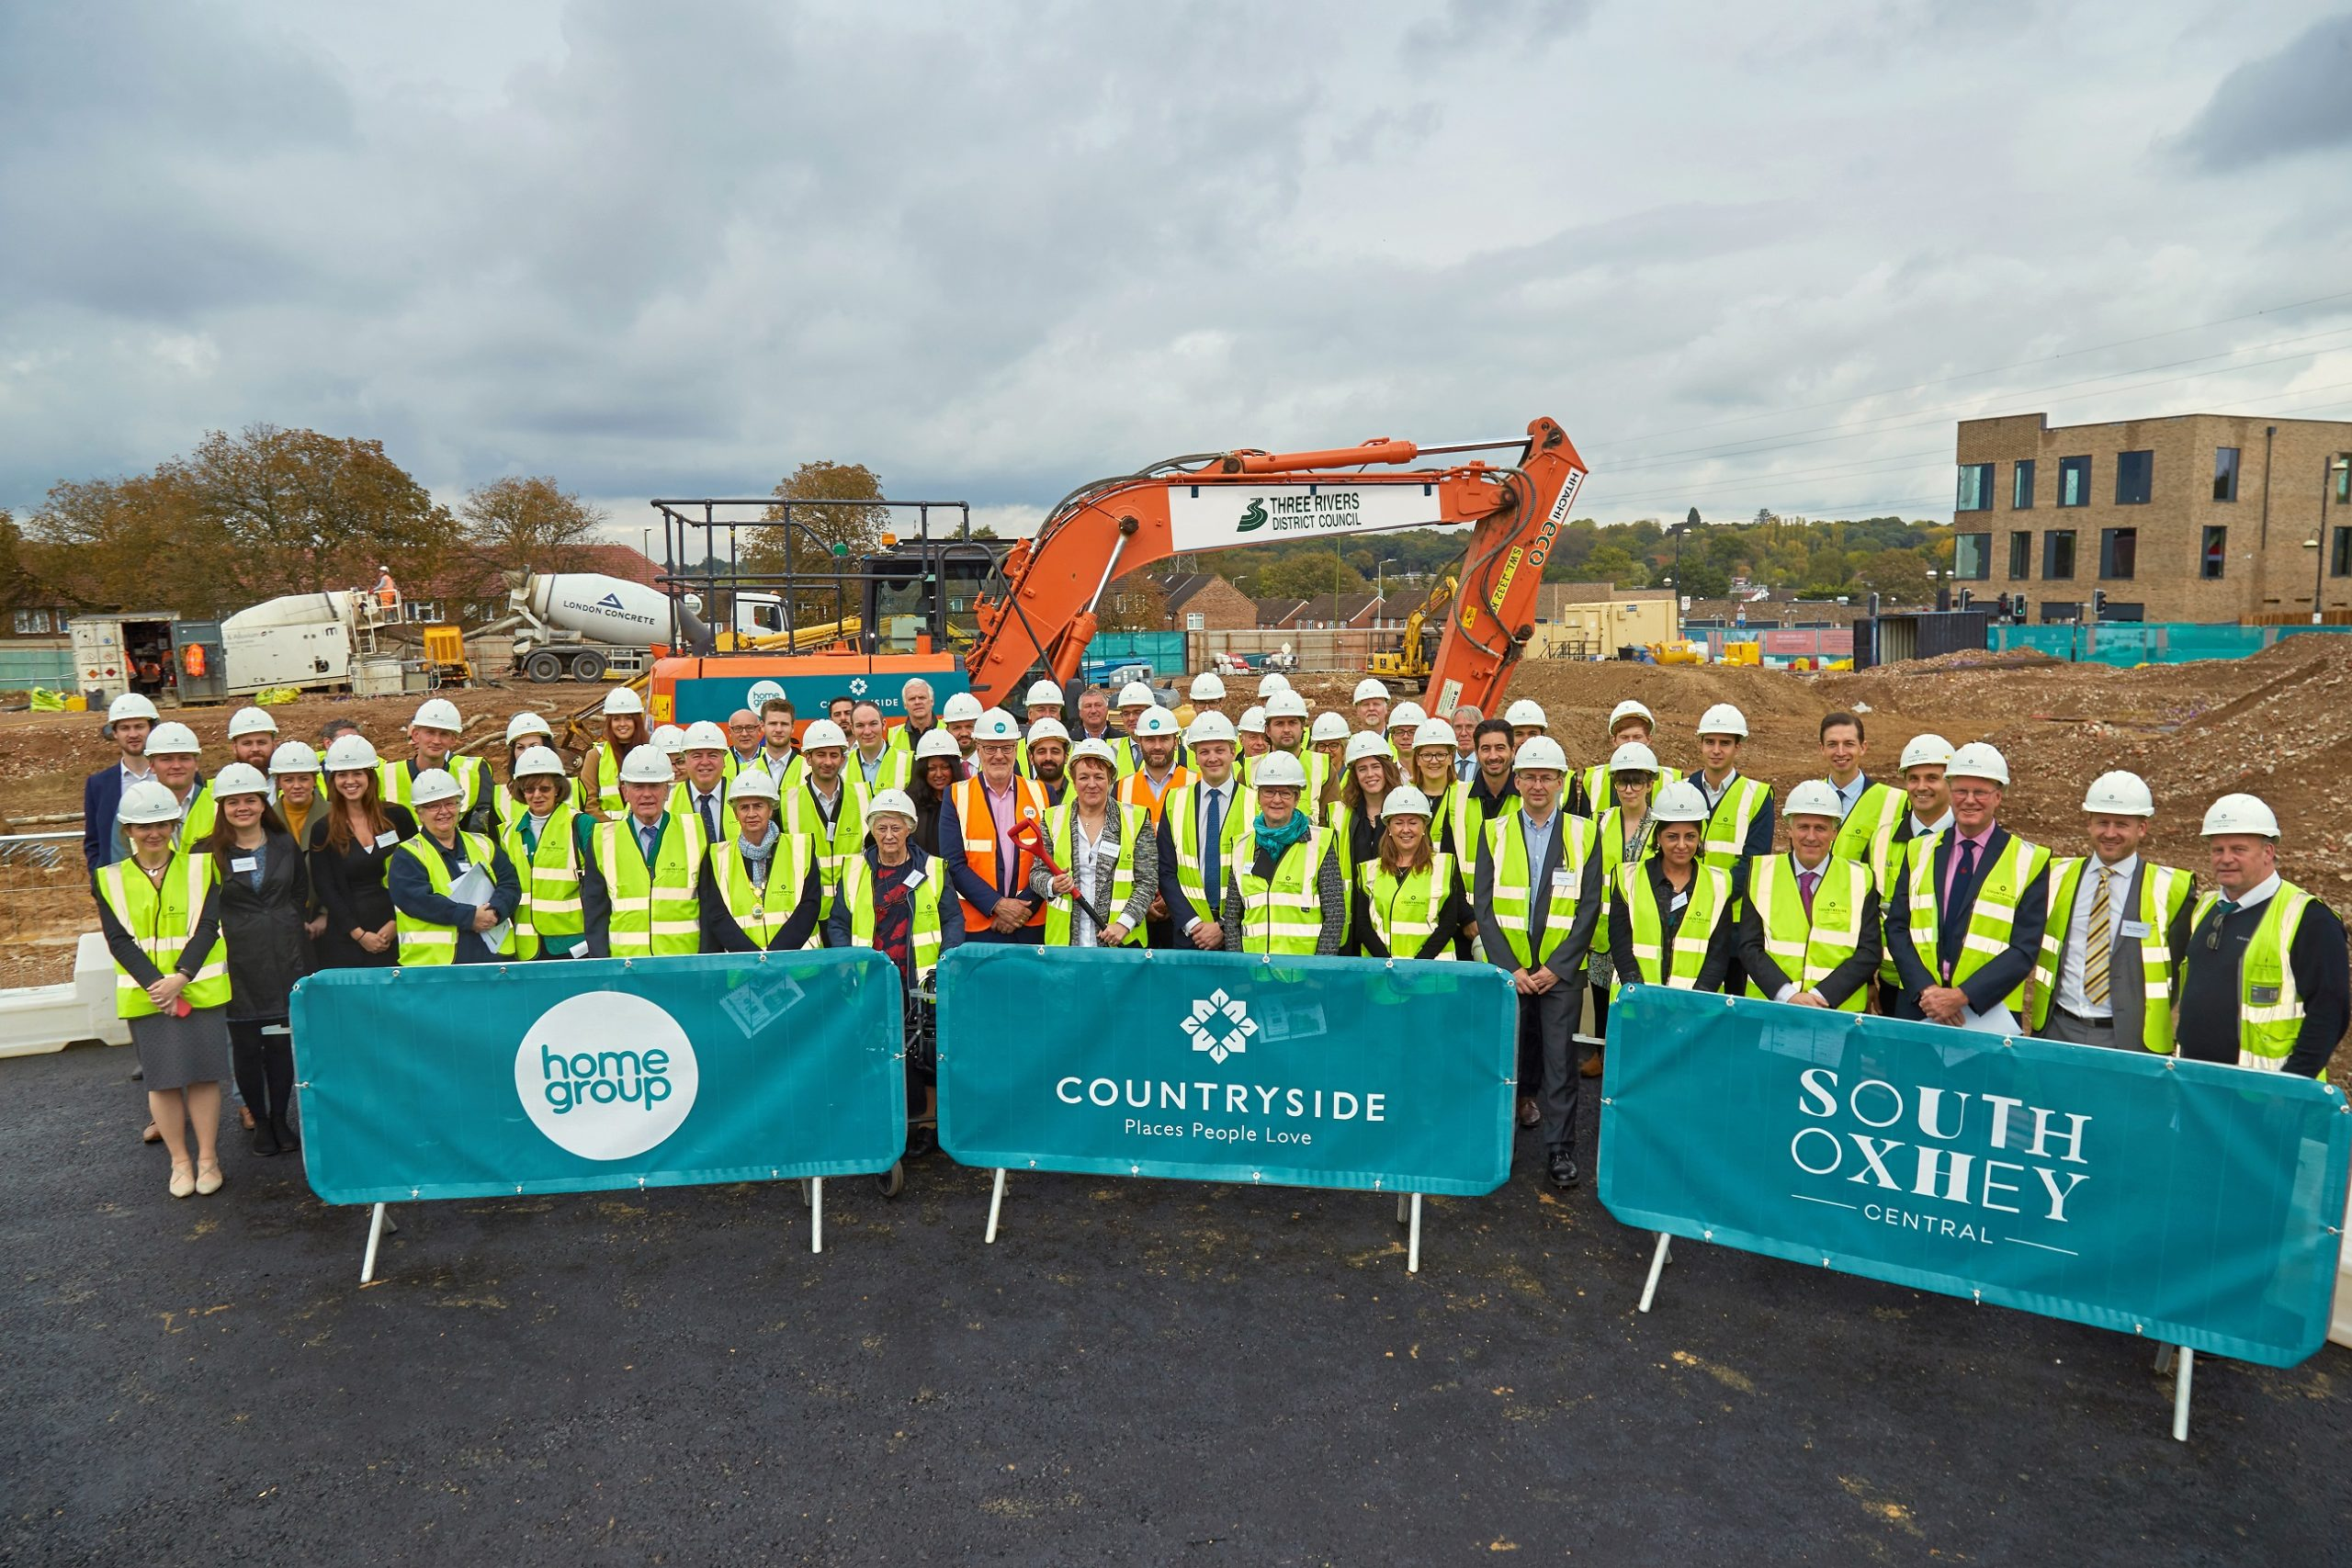 Breaking new ground: South Oxhey mixed use development